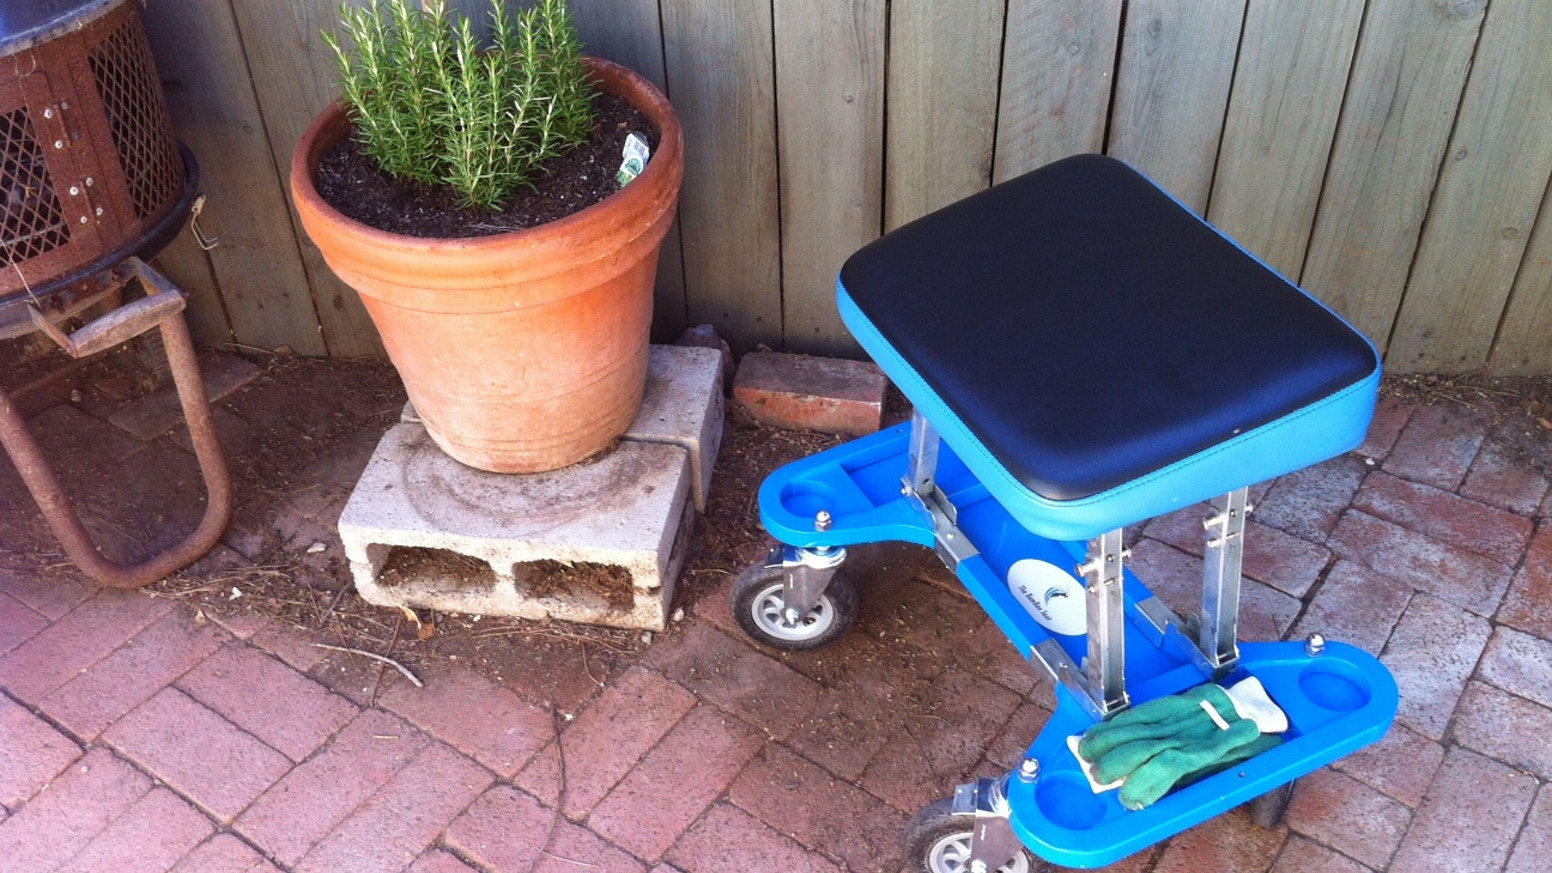 The 'BumBee Seat' is a New Product Design and the Ultimate Seating Gadget on Wheels for Summer Fun in your Garden, Office & Garage!